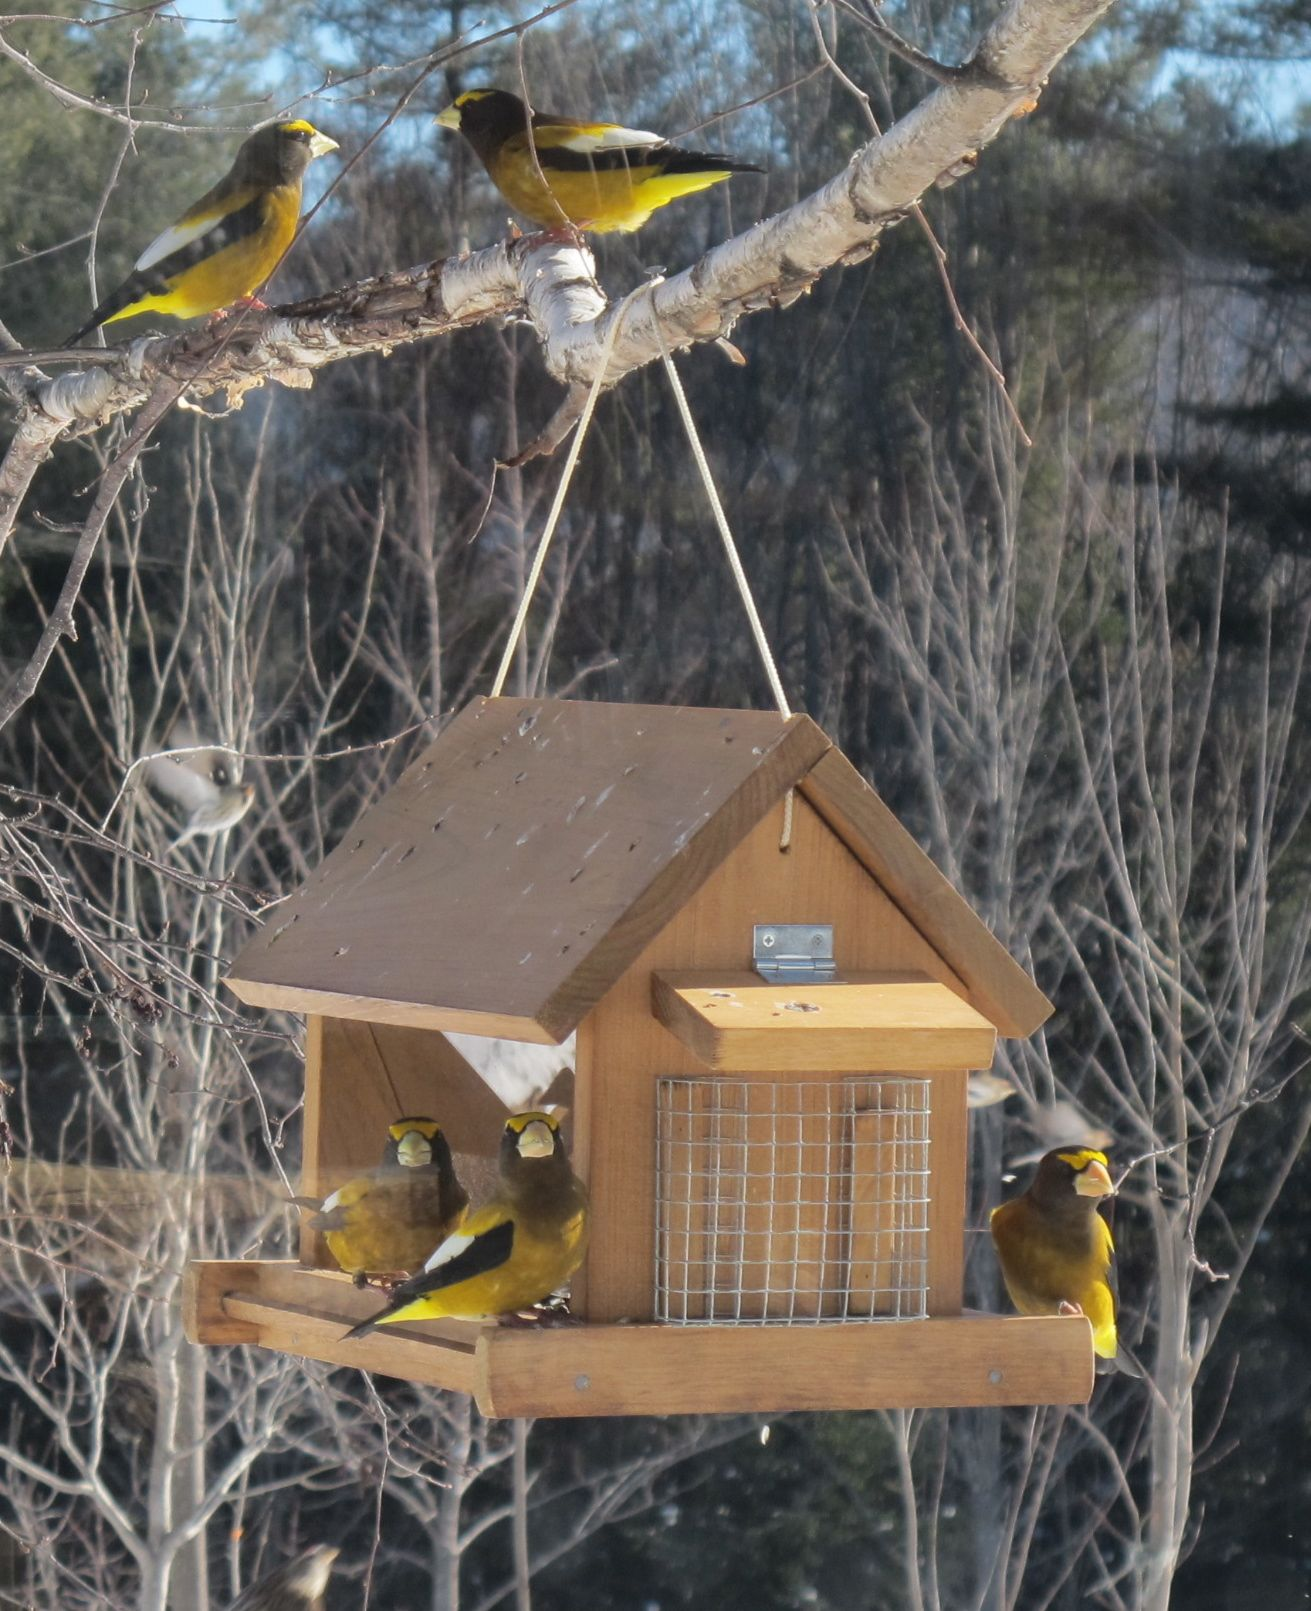 The evening grosbeaks were out in force (as were pine grosbeaks and redpolls) when we reached Bernd Heinrich's cabin.